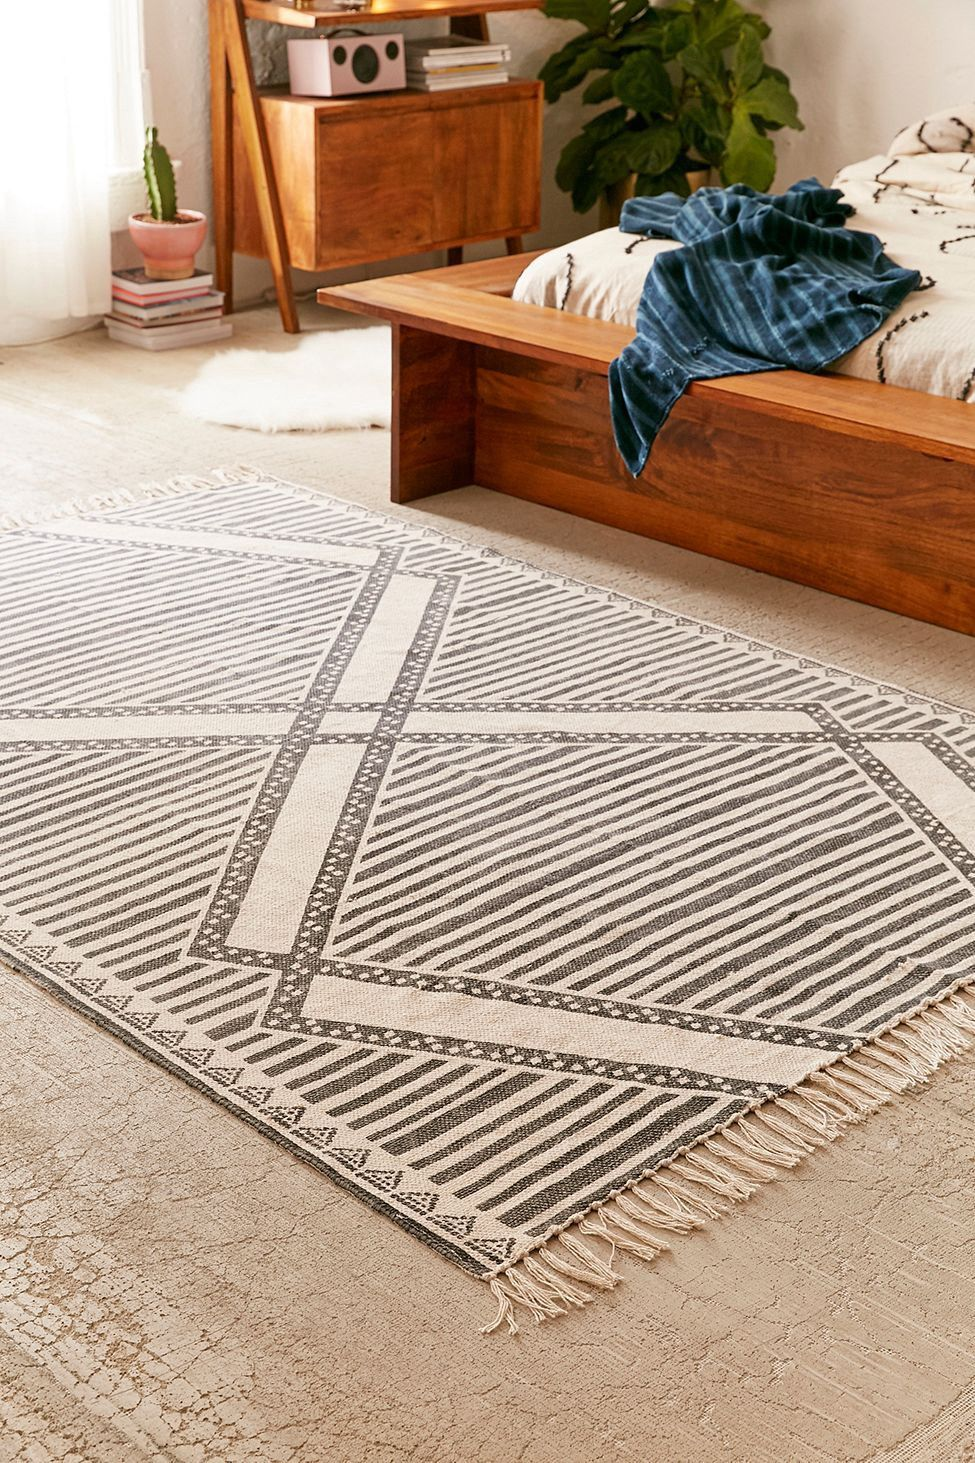 Shabby Küchendeko Urban Outfitters Delta Printed Rug Black 5x7 Products